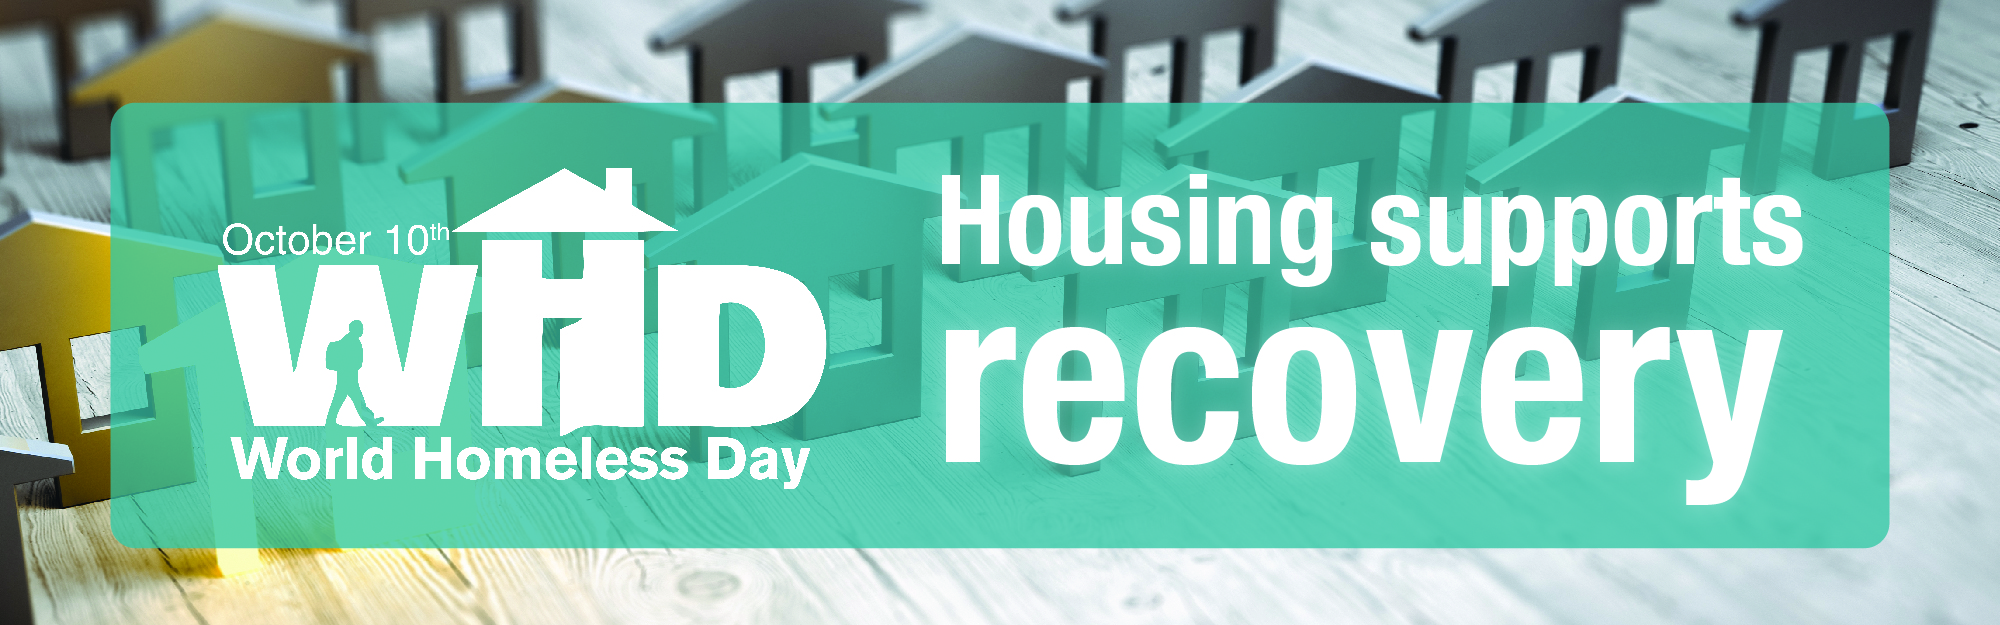 World Homeless Day highlights the importance of supportive housing